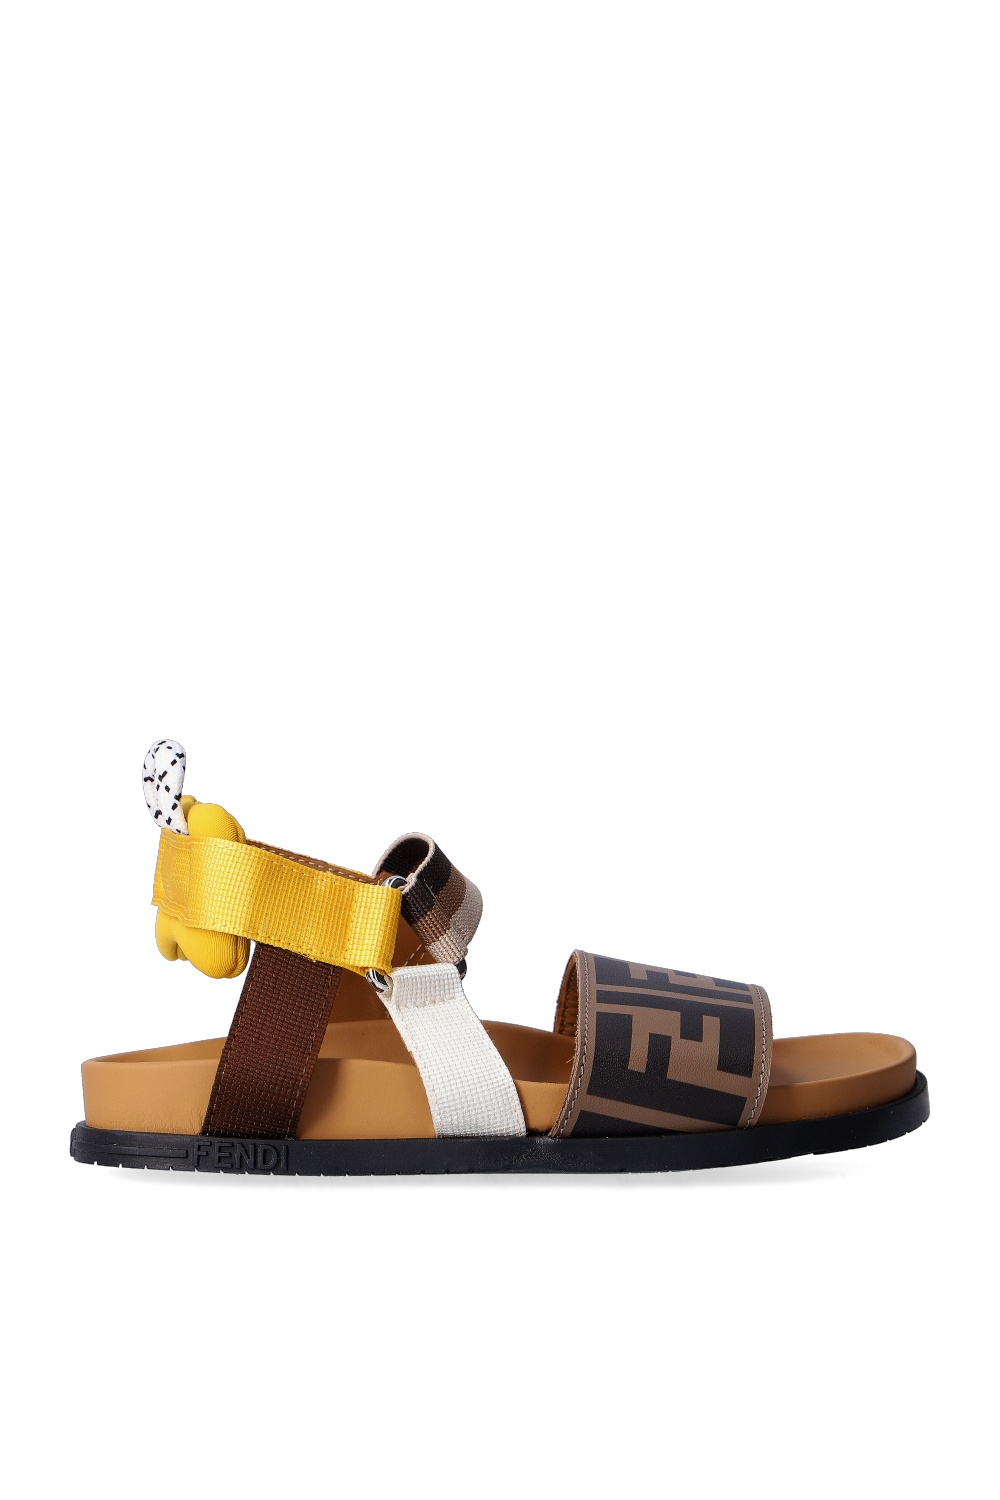 Fendi Kids Sandals with logo